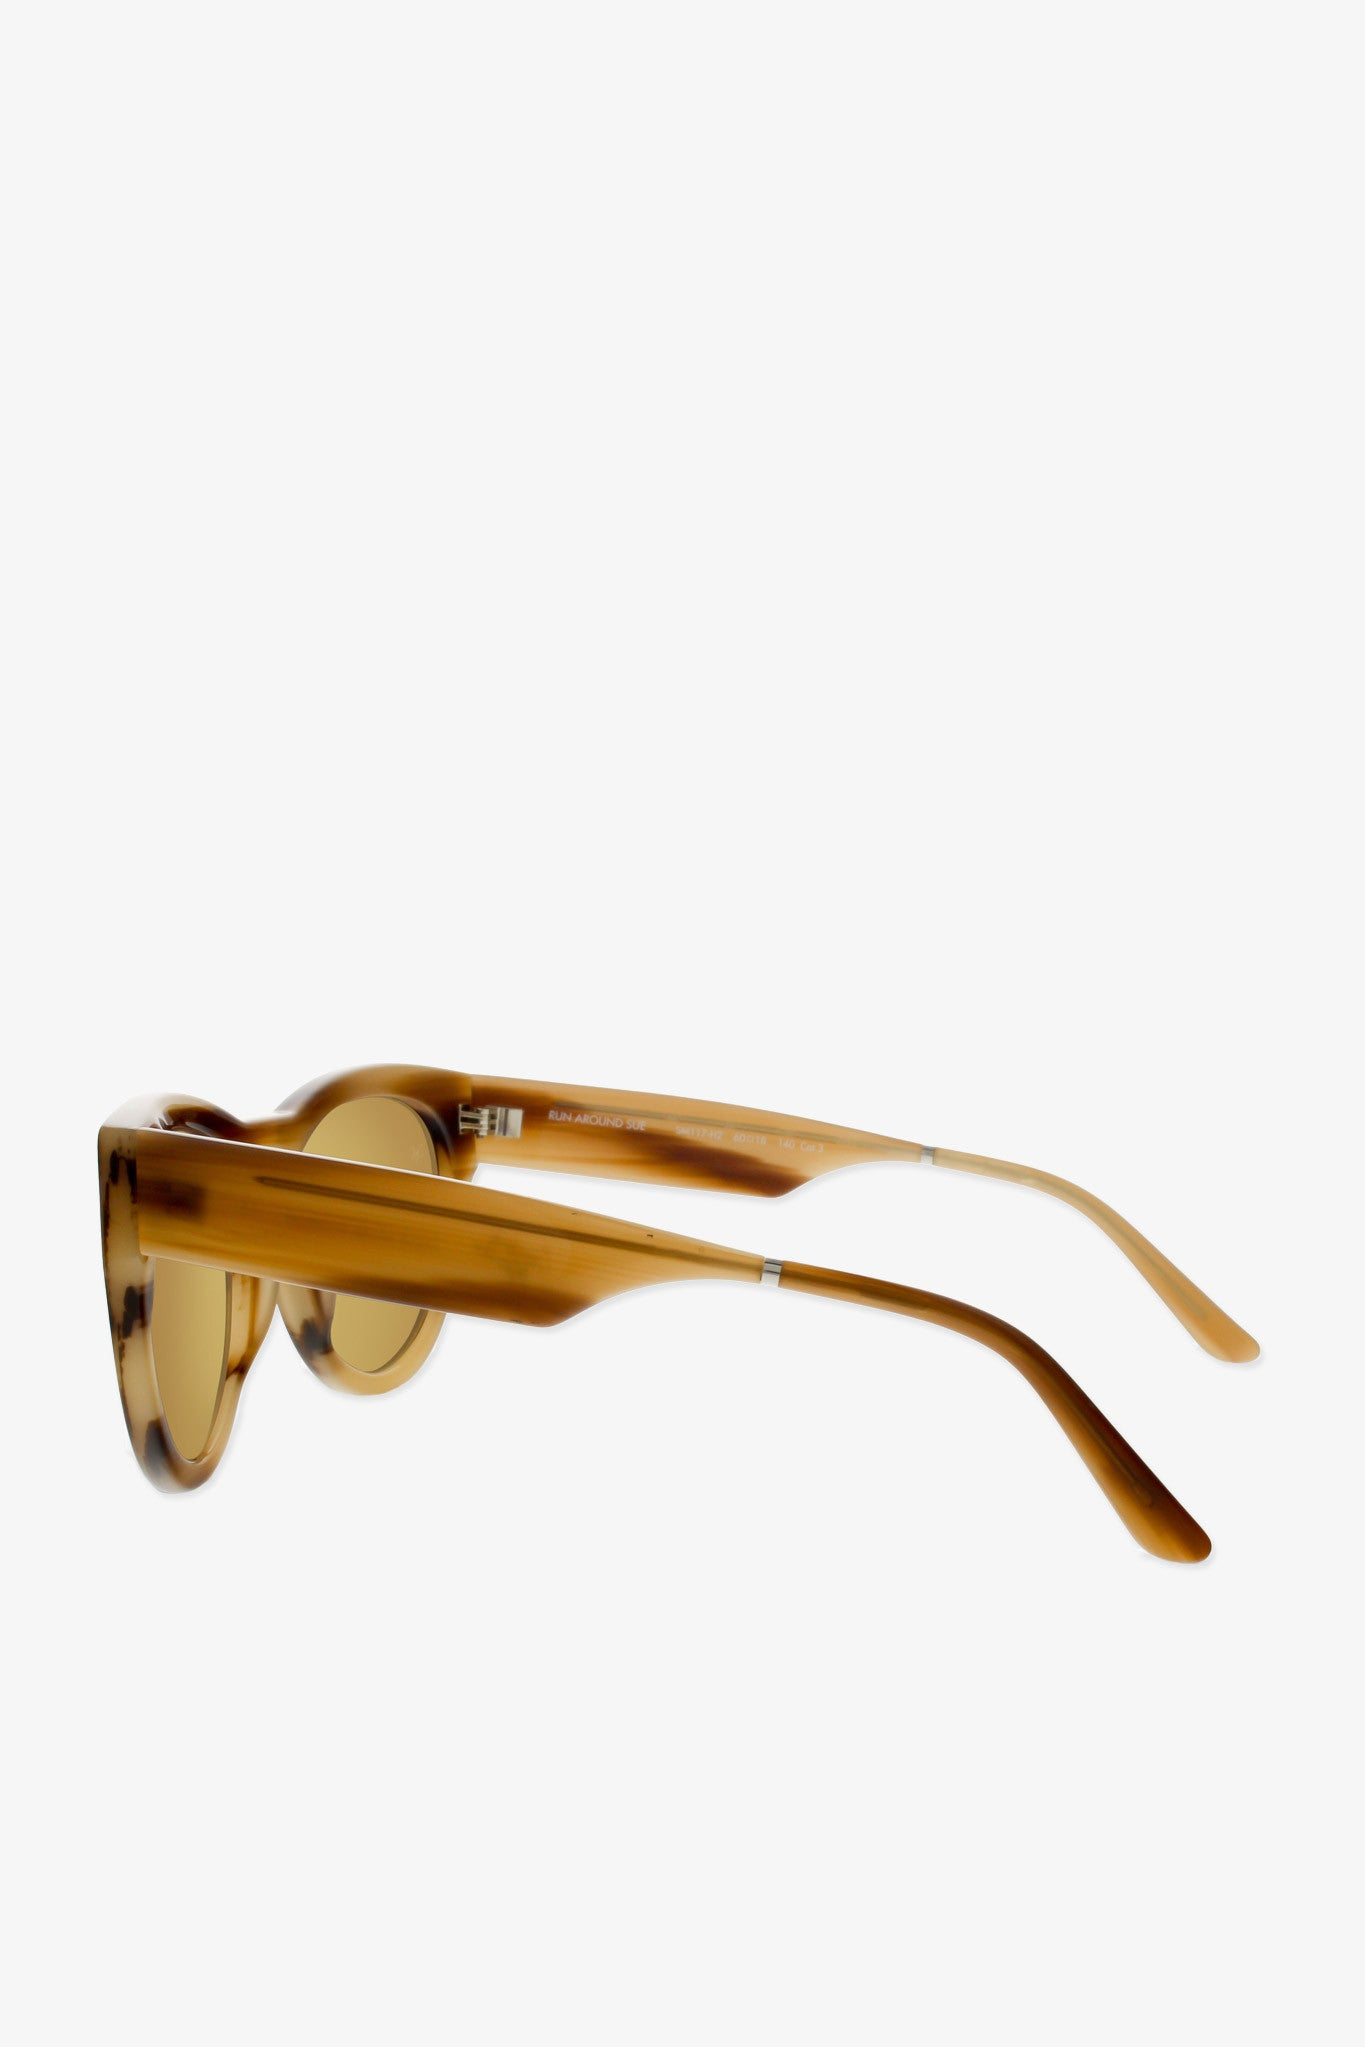 Run around sue sunglasses in milky tortoise